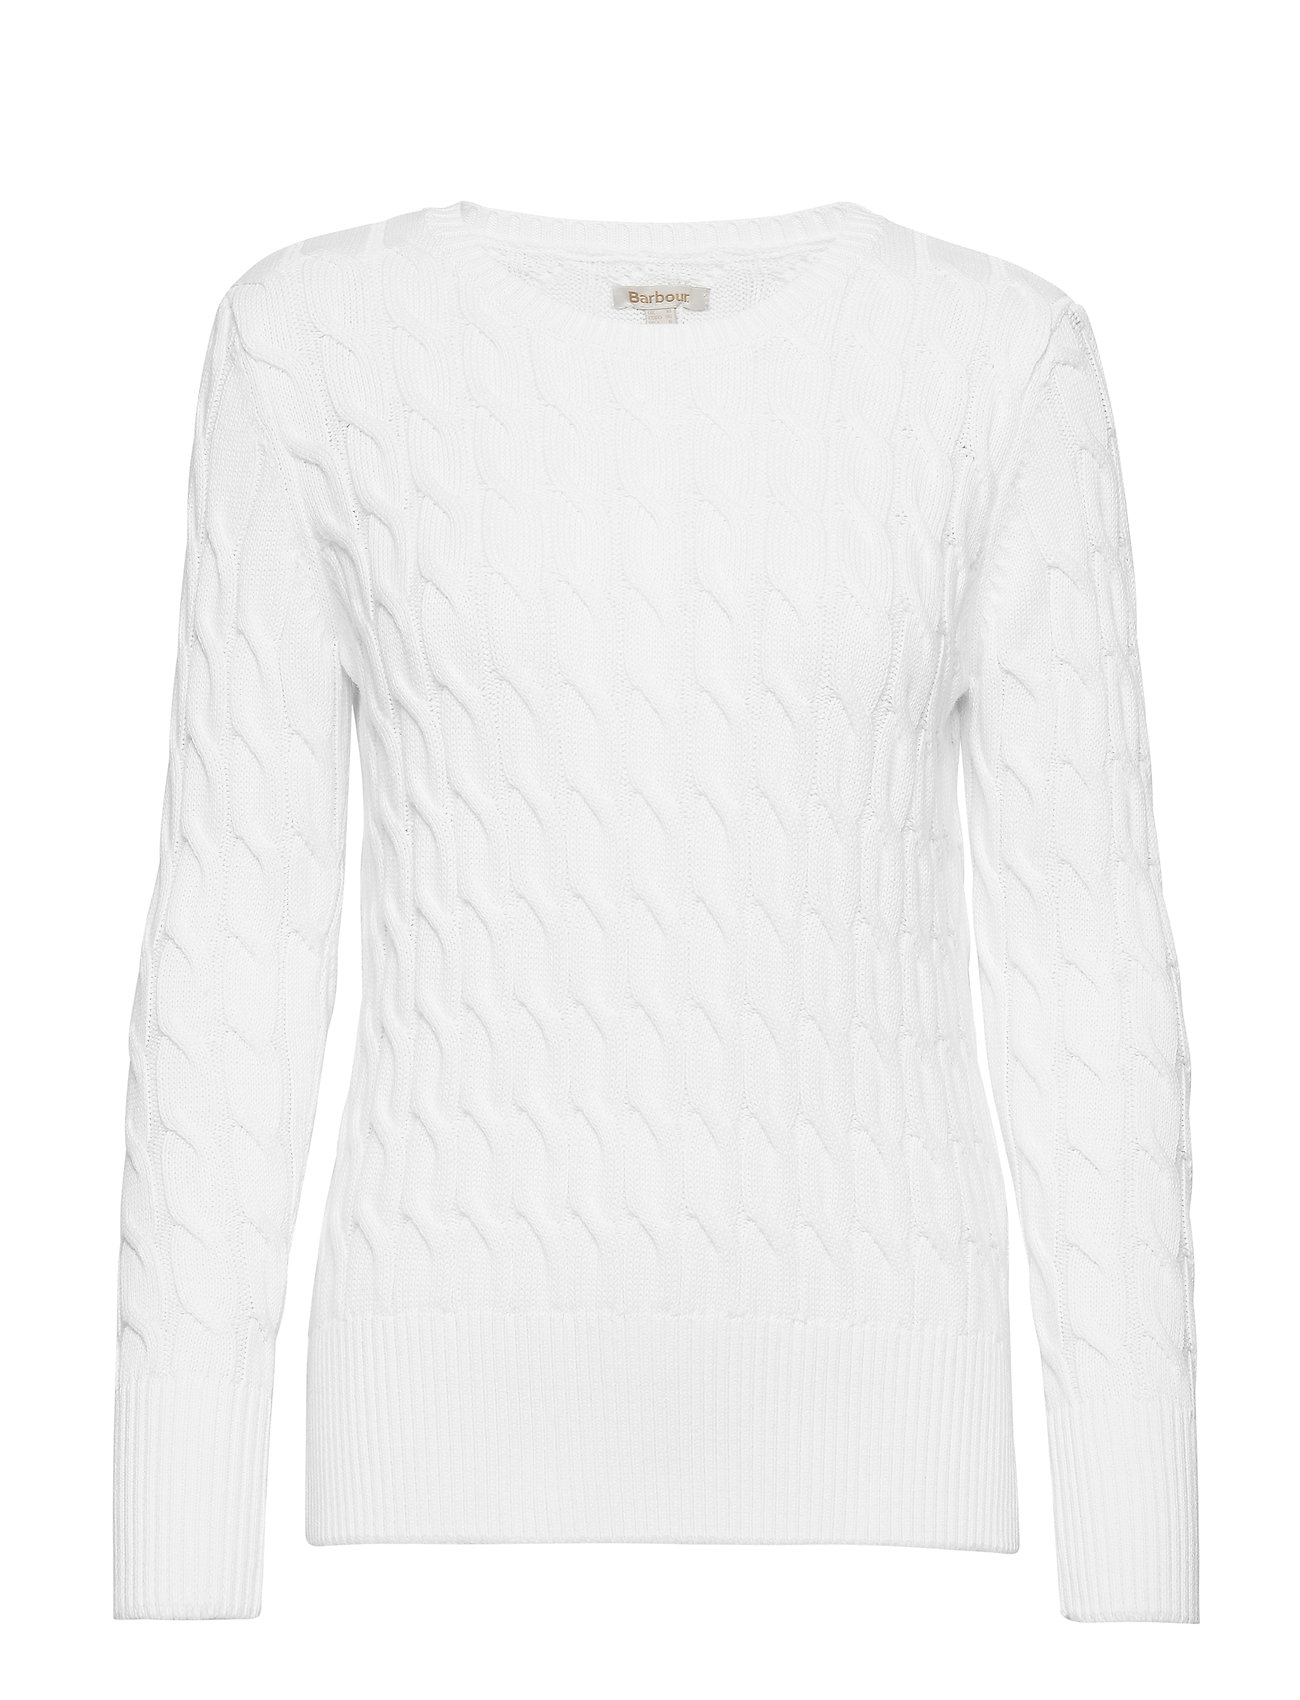 Barbour Barbour Lewes Knit - OFF WHITE